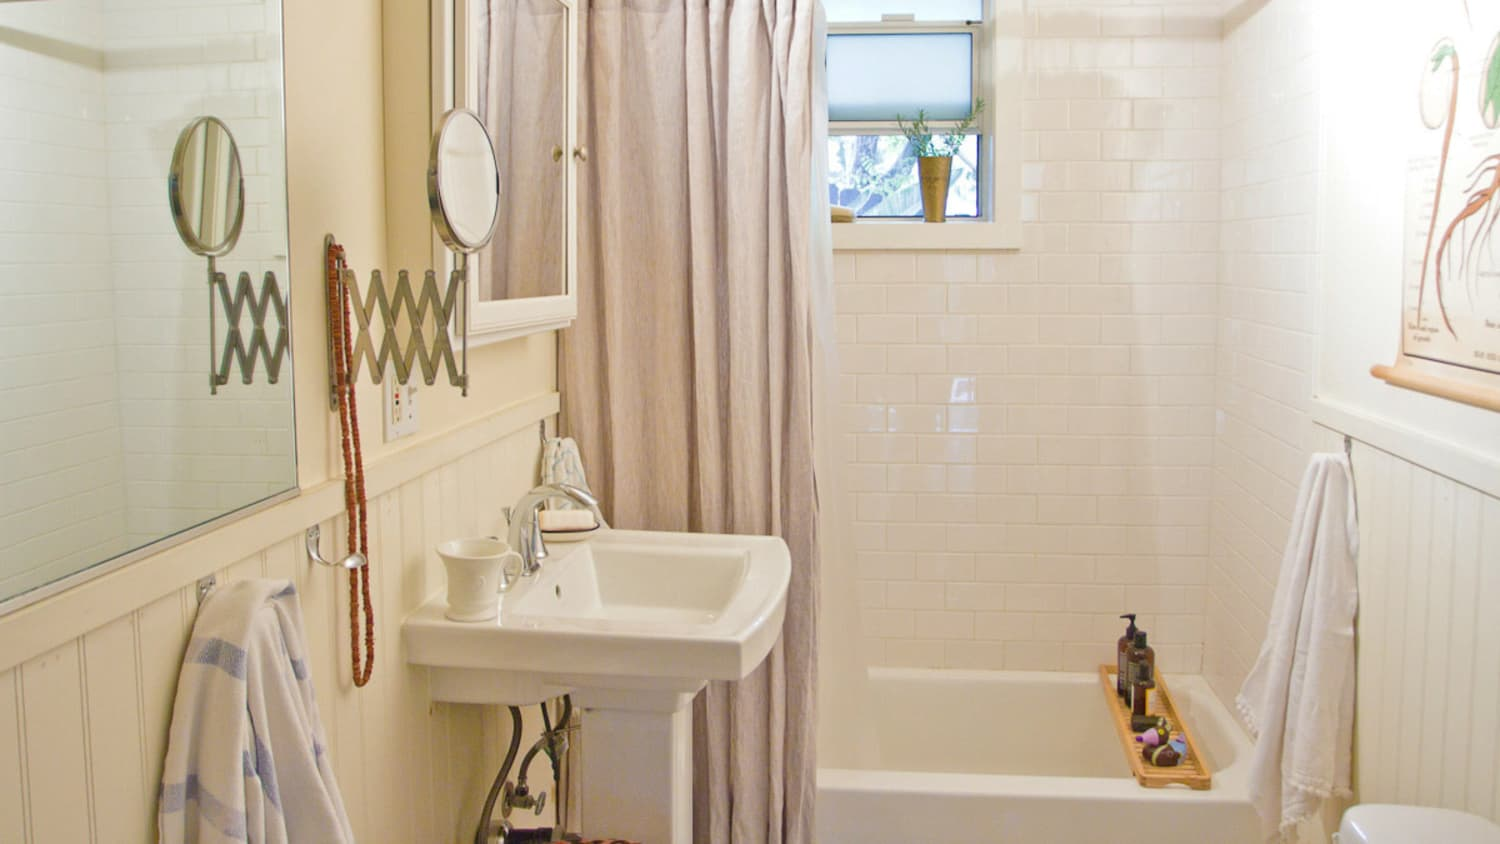 How To Clean Your Old Bathtub So It Looks New  Apartment Therapy